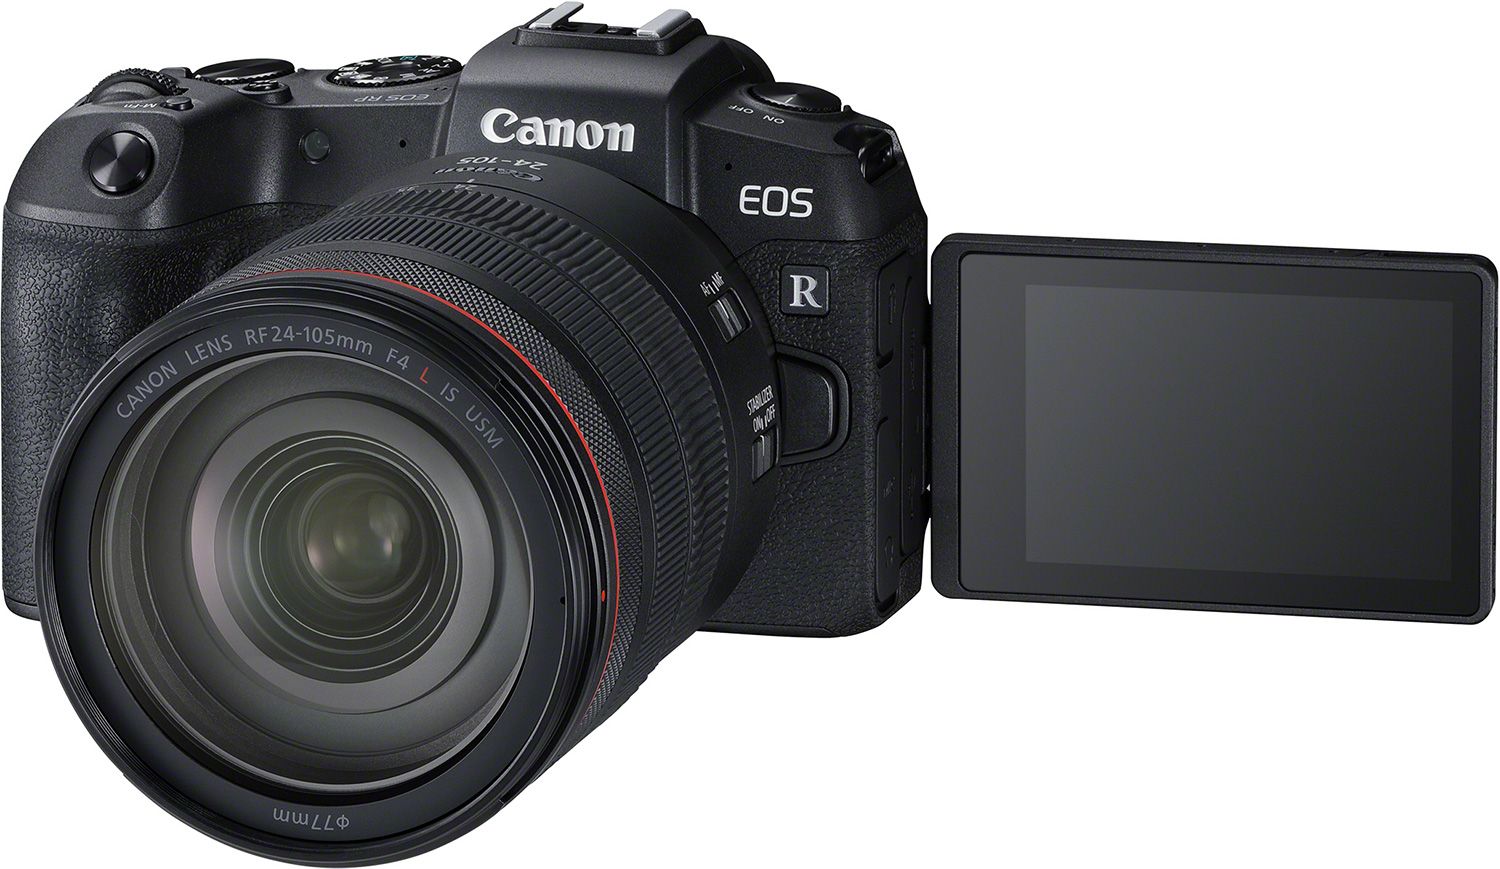 EOS RP camera with 24-105